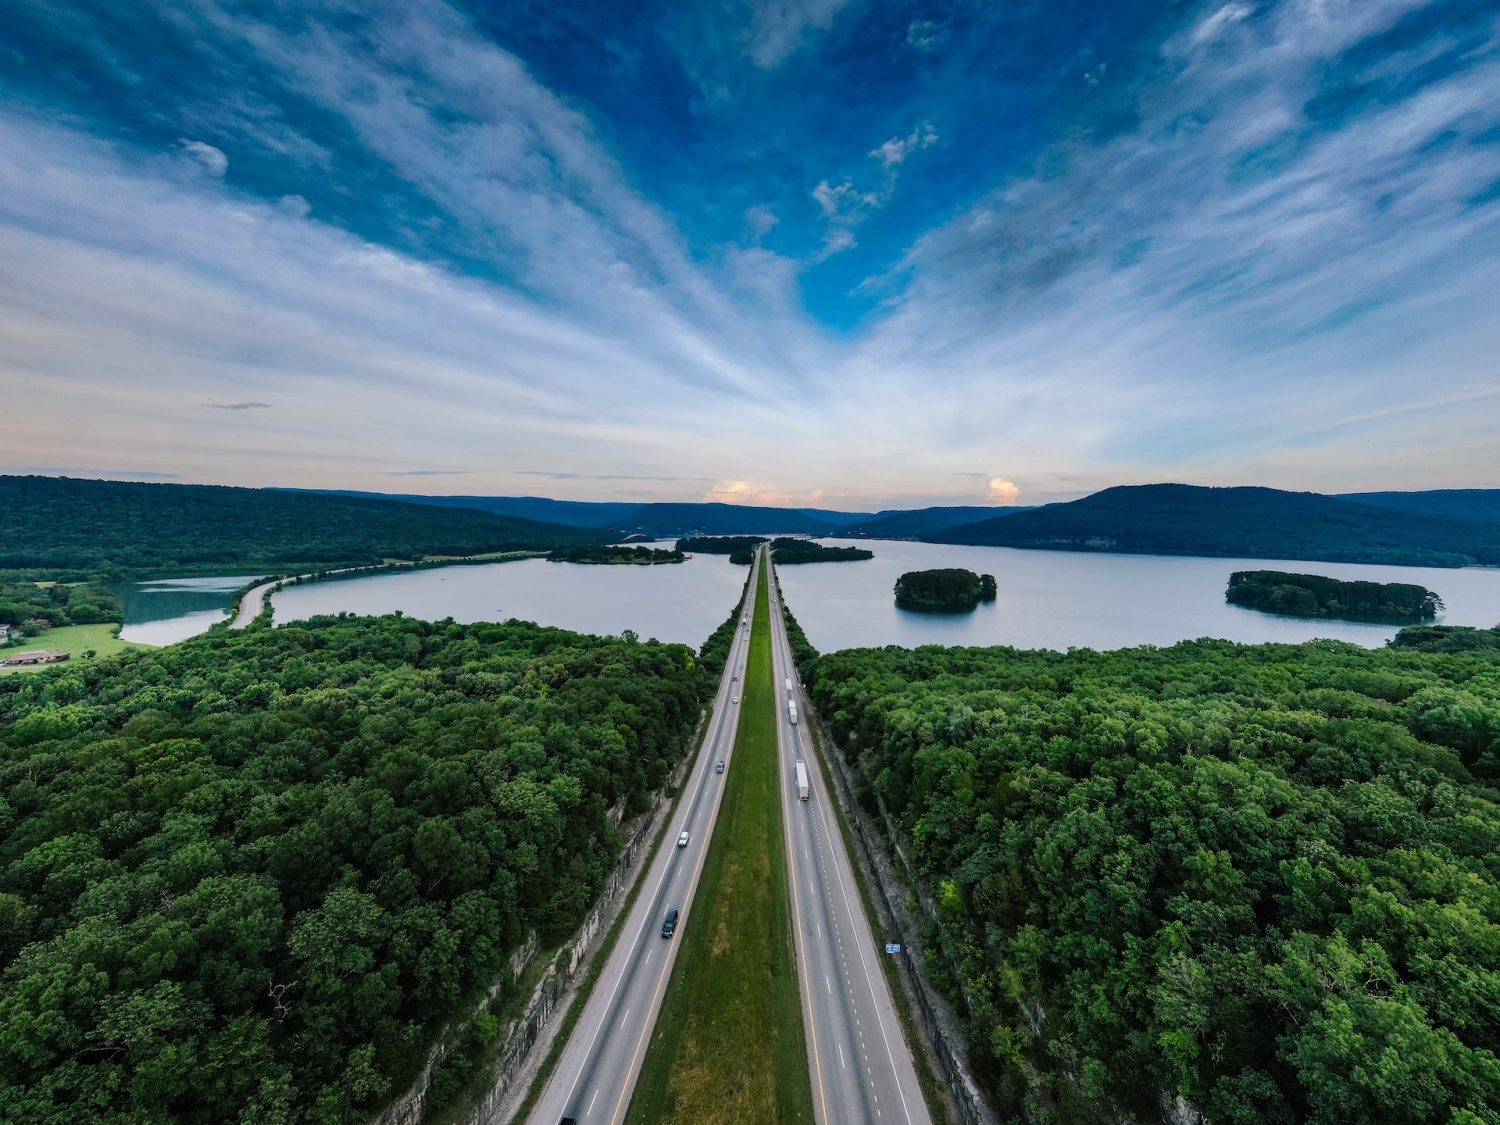 Drone shot above a scenic freeway and lake